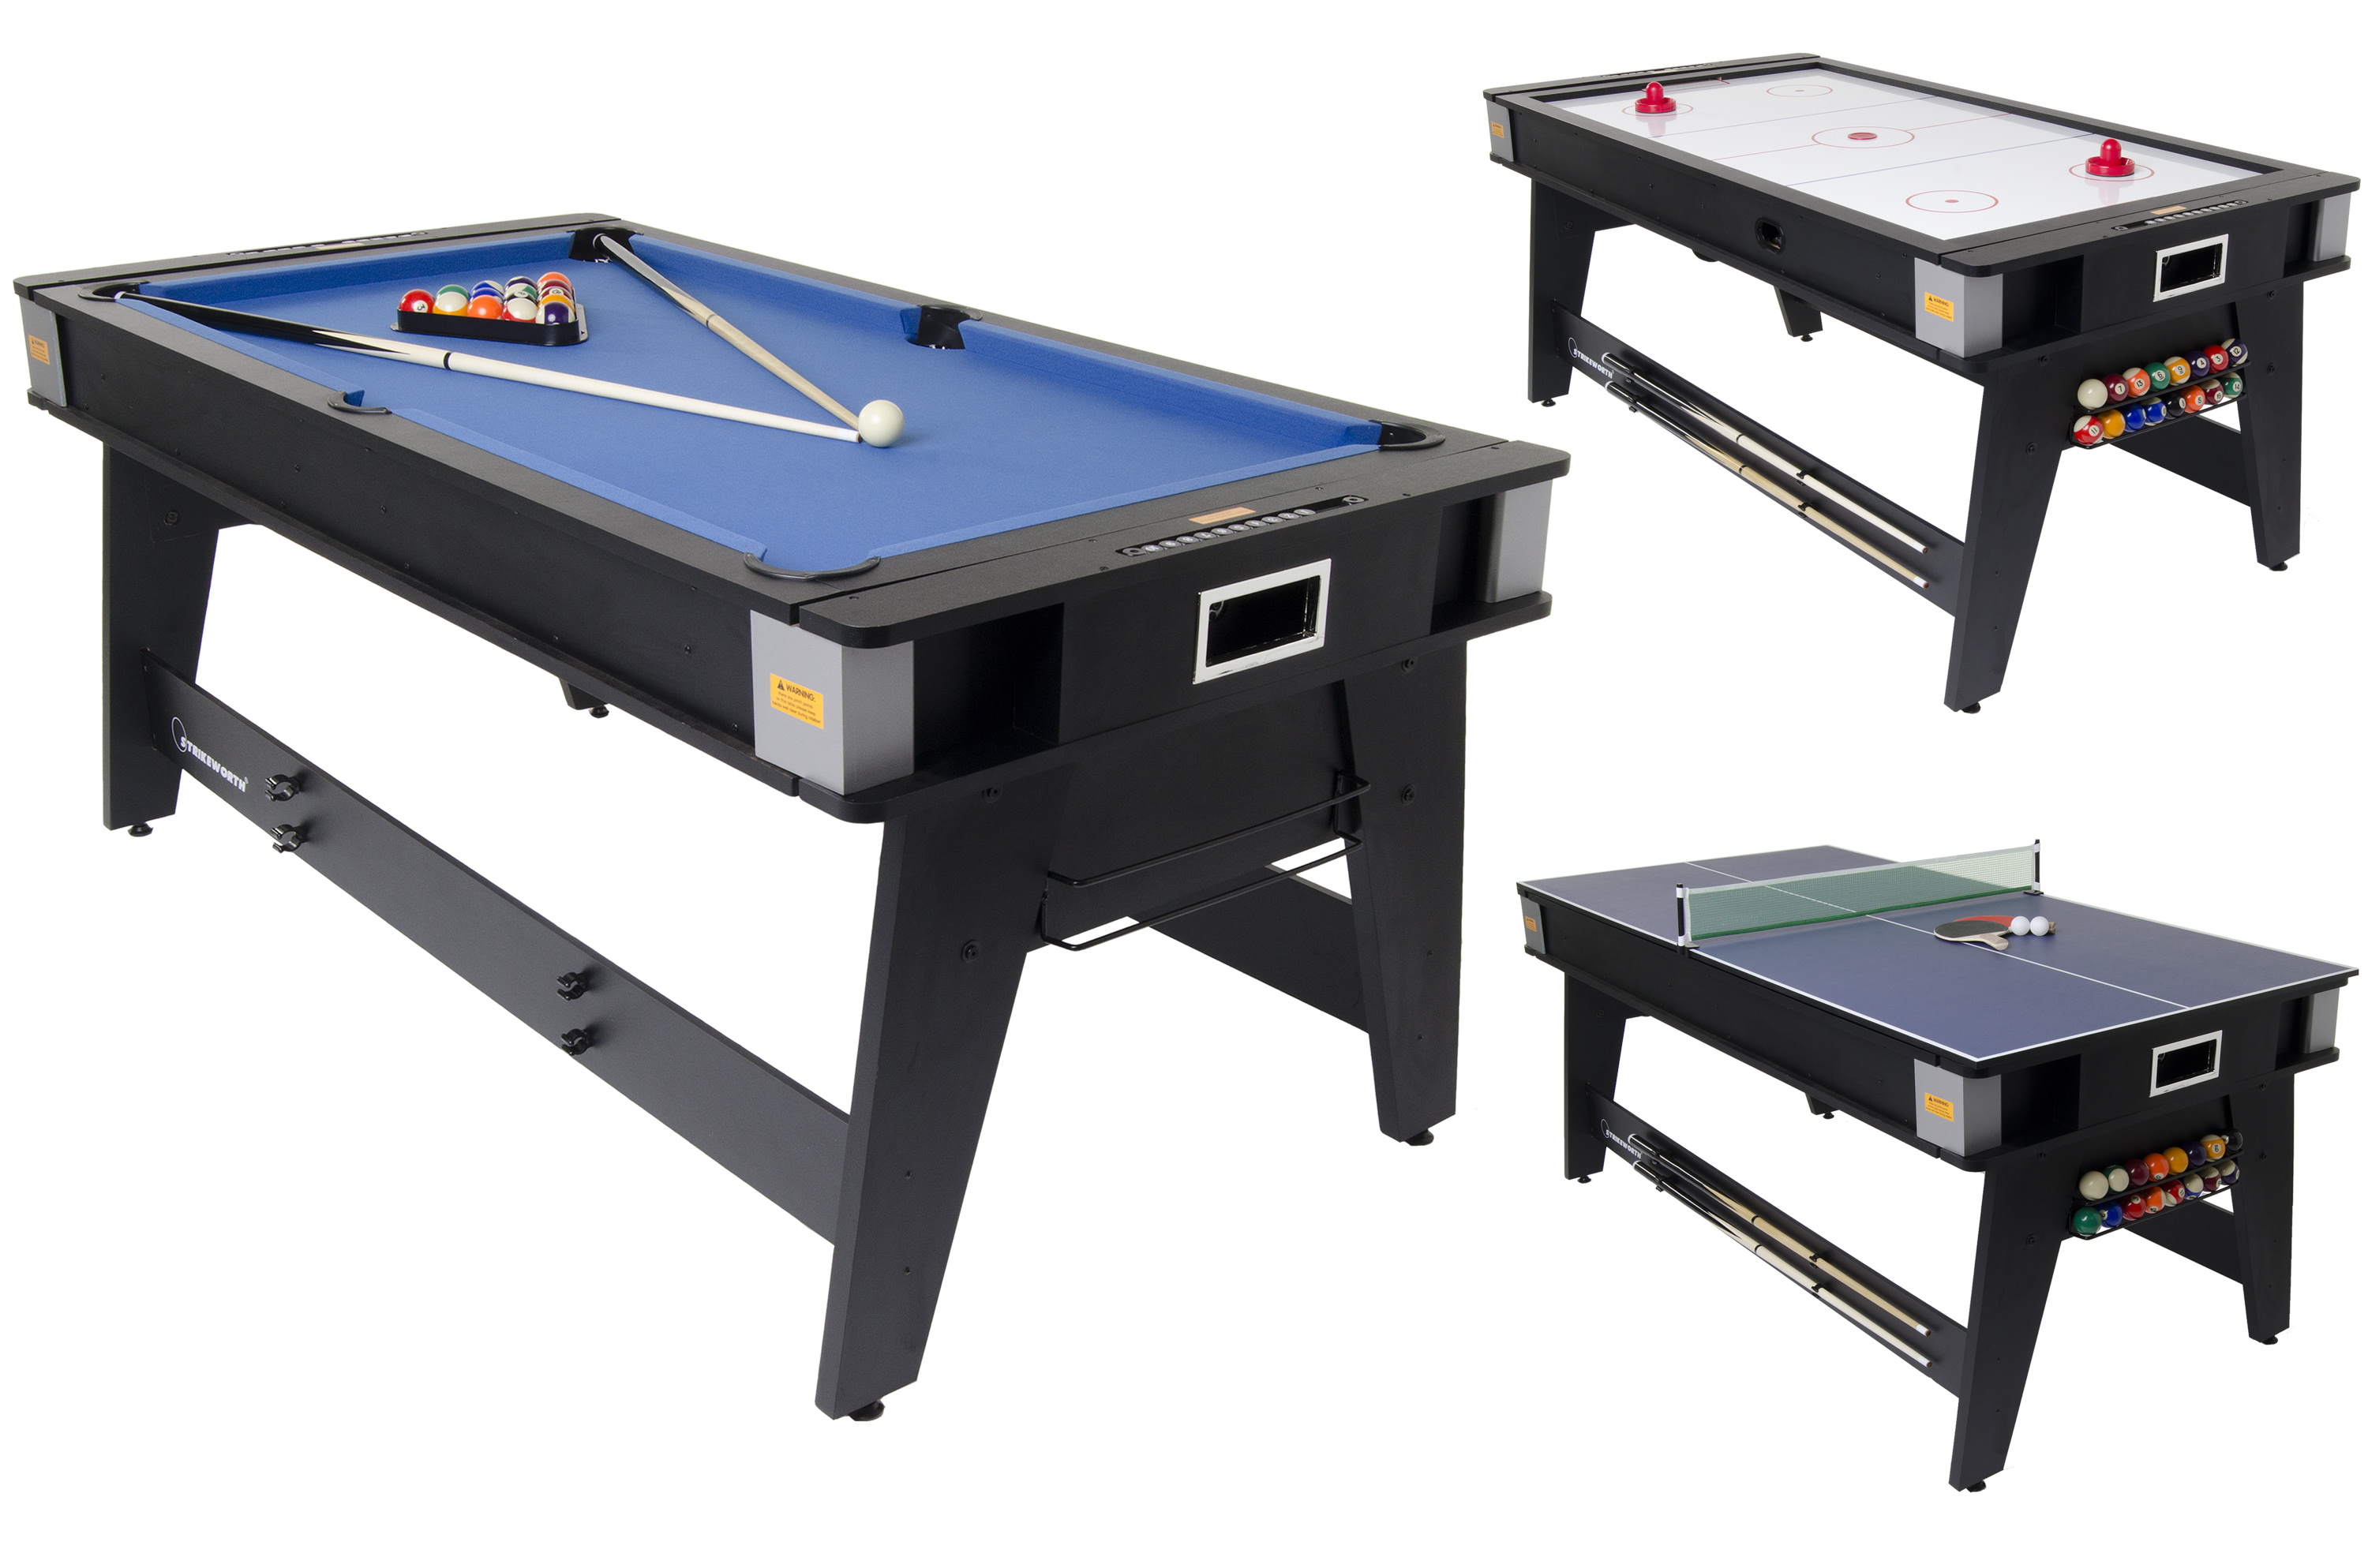 Strikeworth Foot Multi Games Table Liberty Games - Six foot pool table